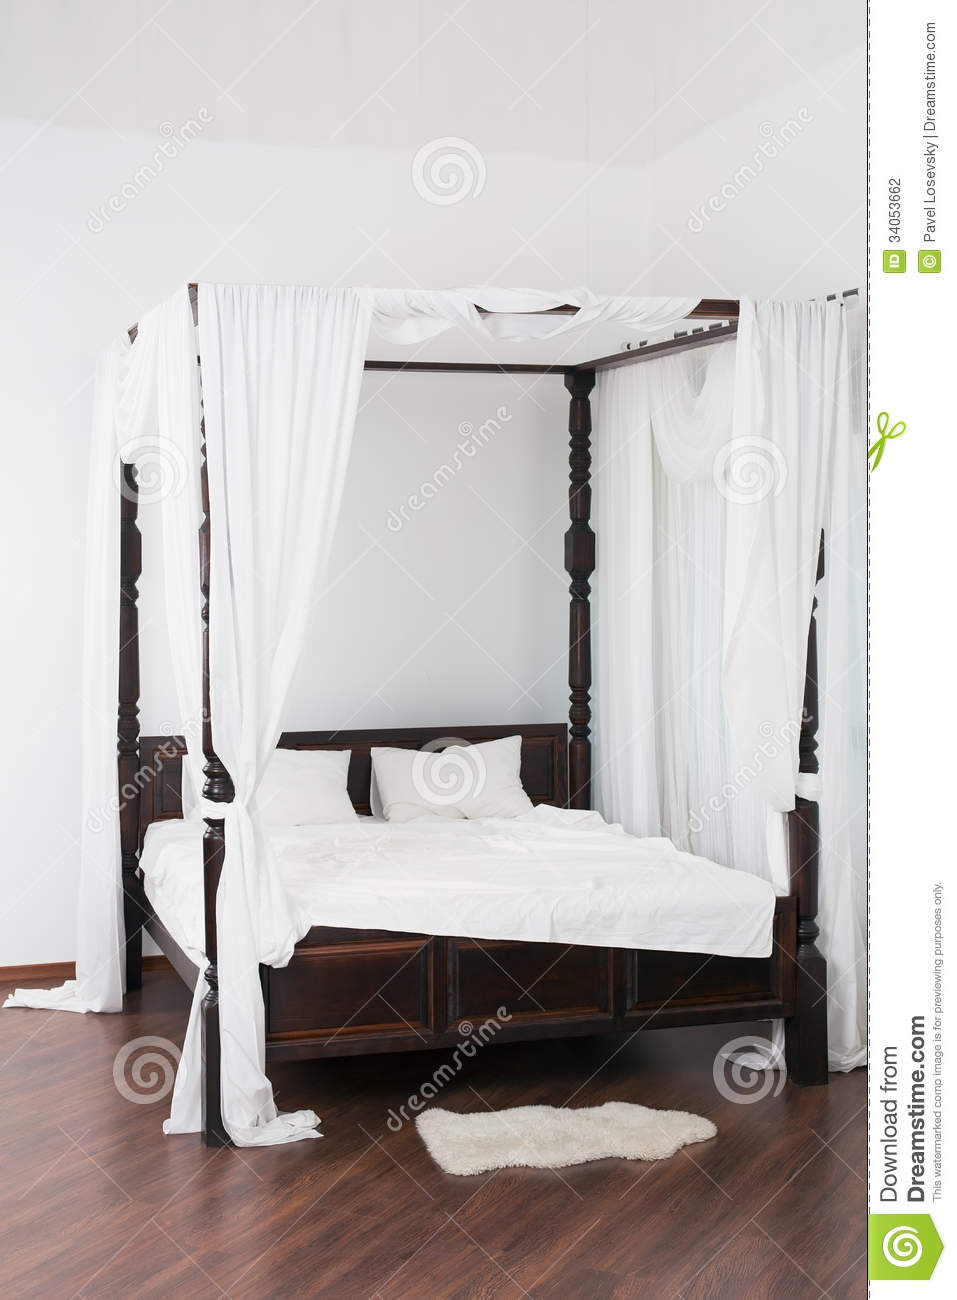 Wooden Canopy Bed And A White Hide On The Floor Stock